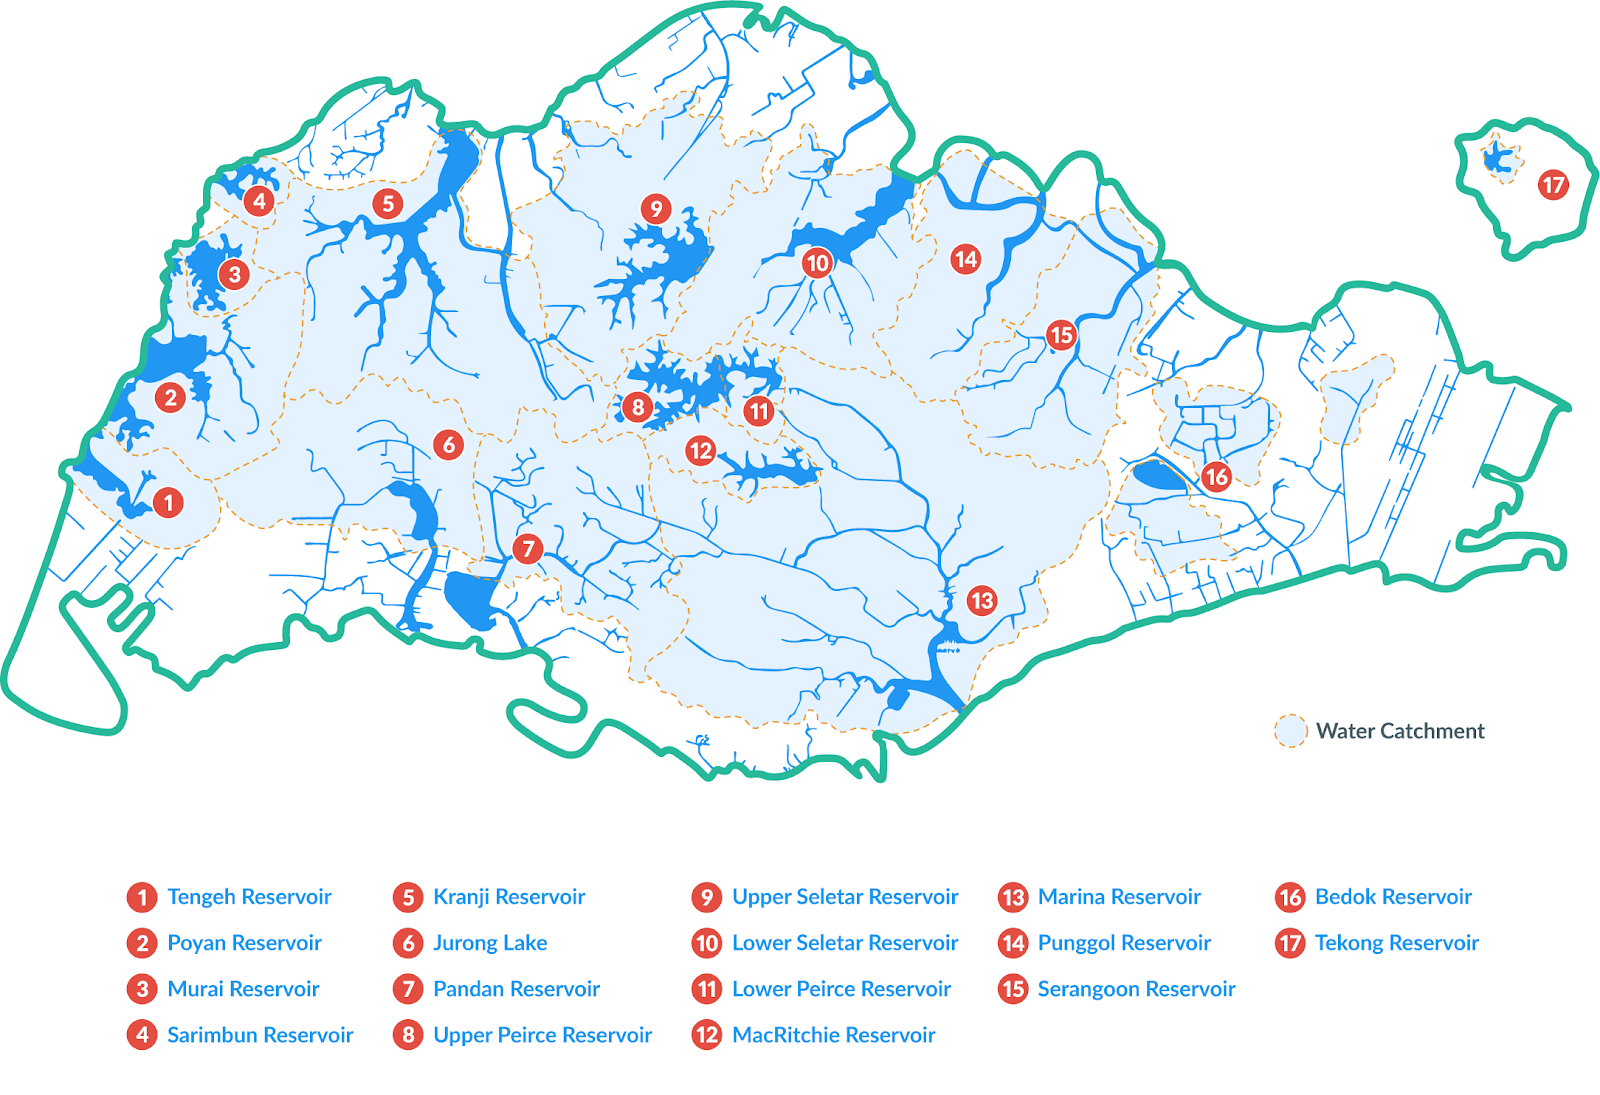 20210323-Reservoir_Blue_Map_SG.png